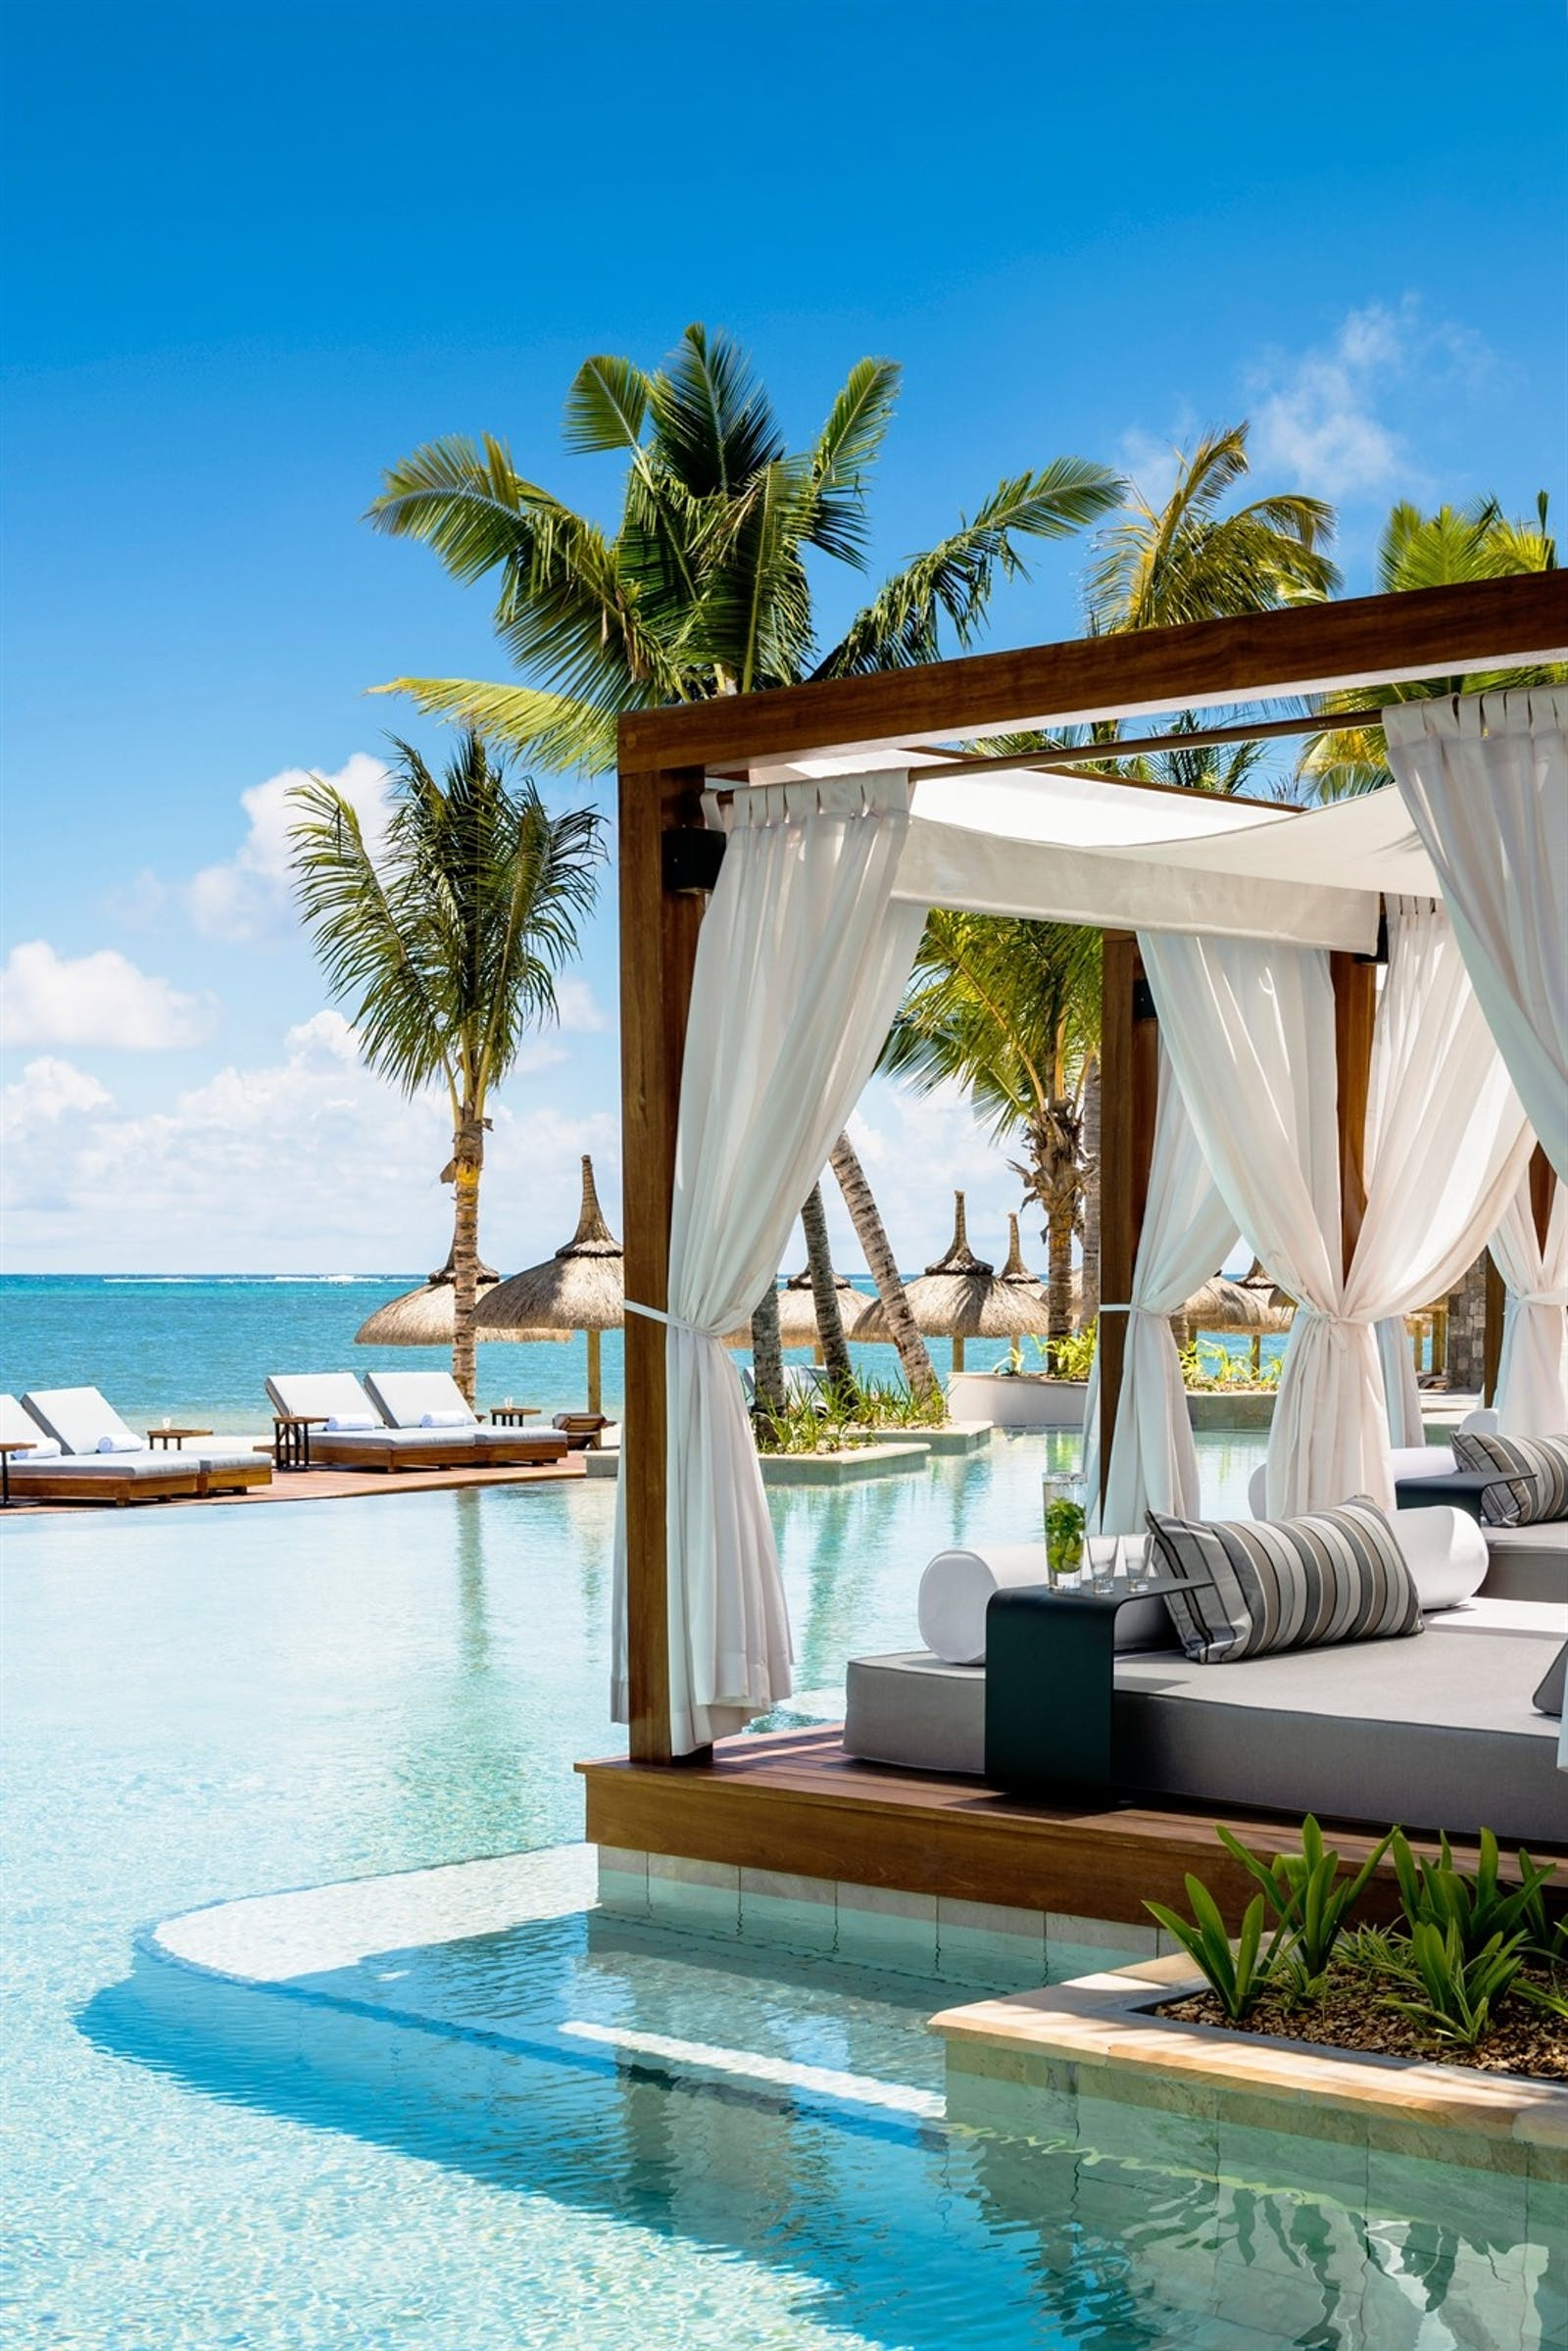 La Pointe Cabanas Pool Extension at One&Only Le Saint Geran, Mauritius